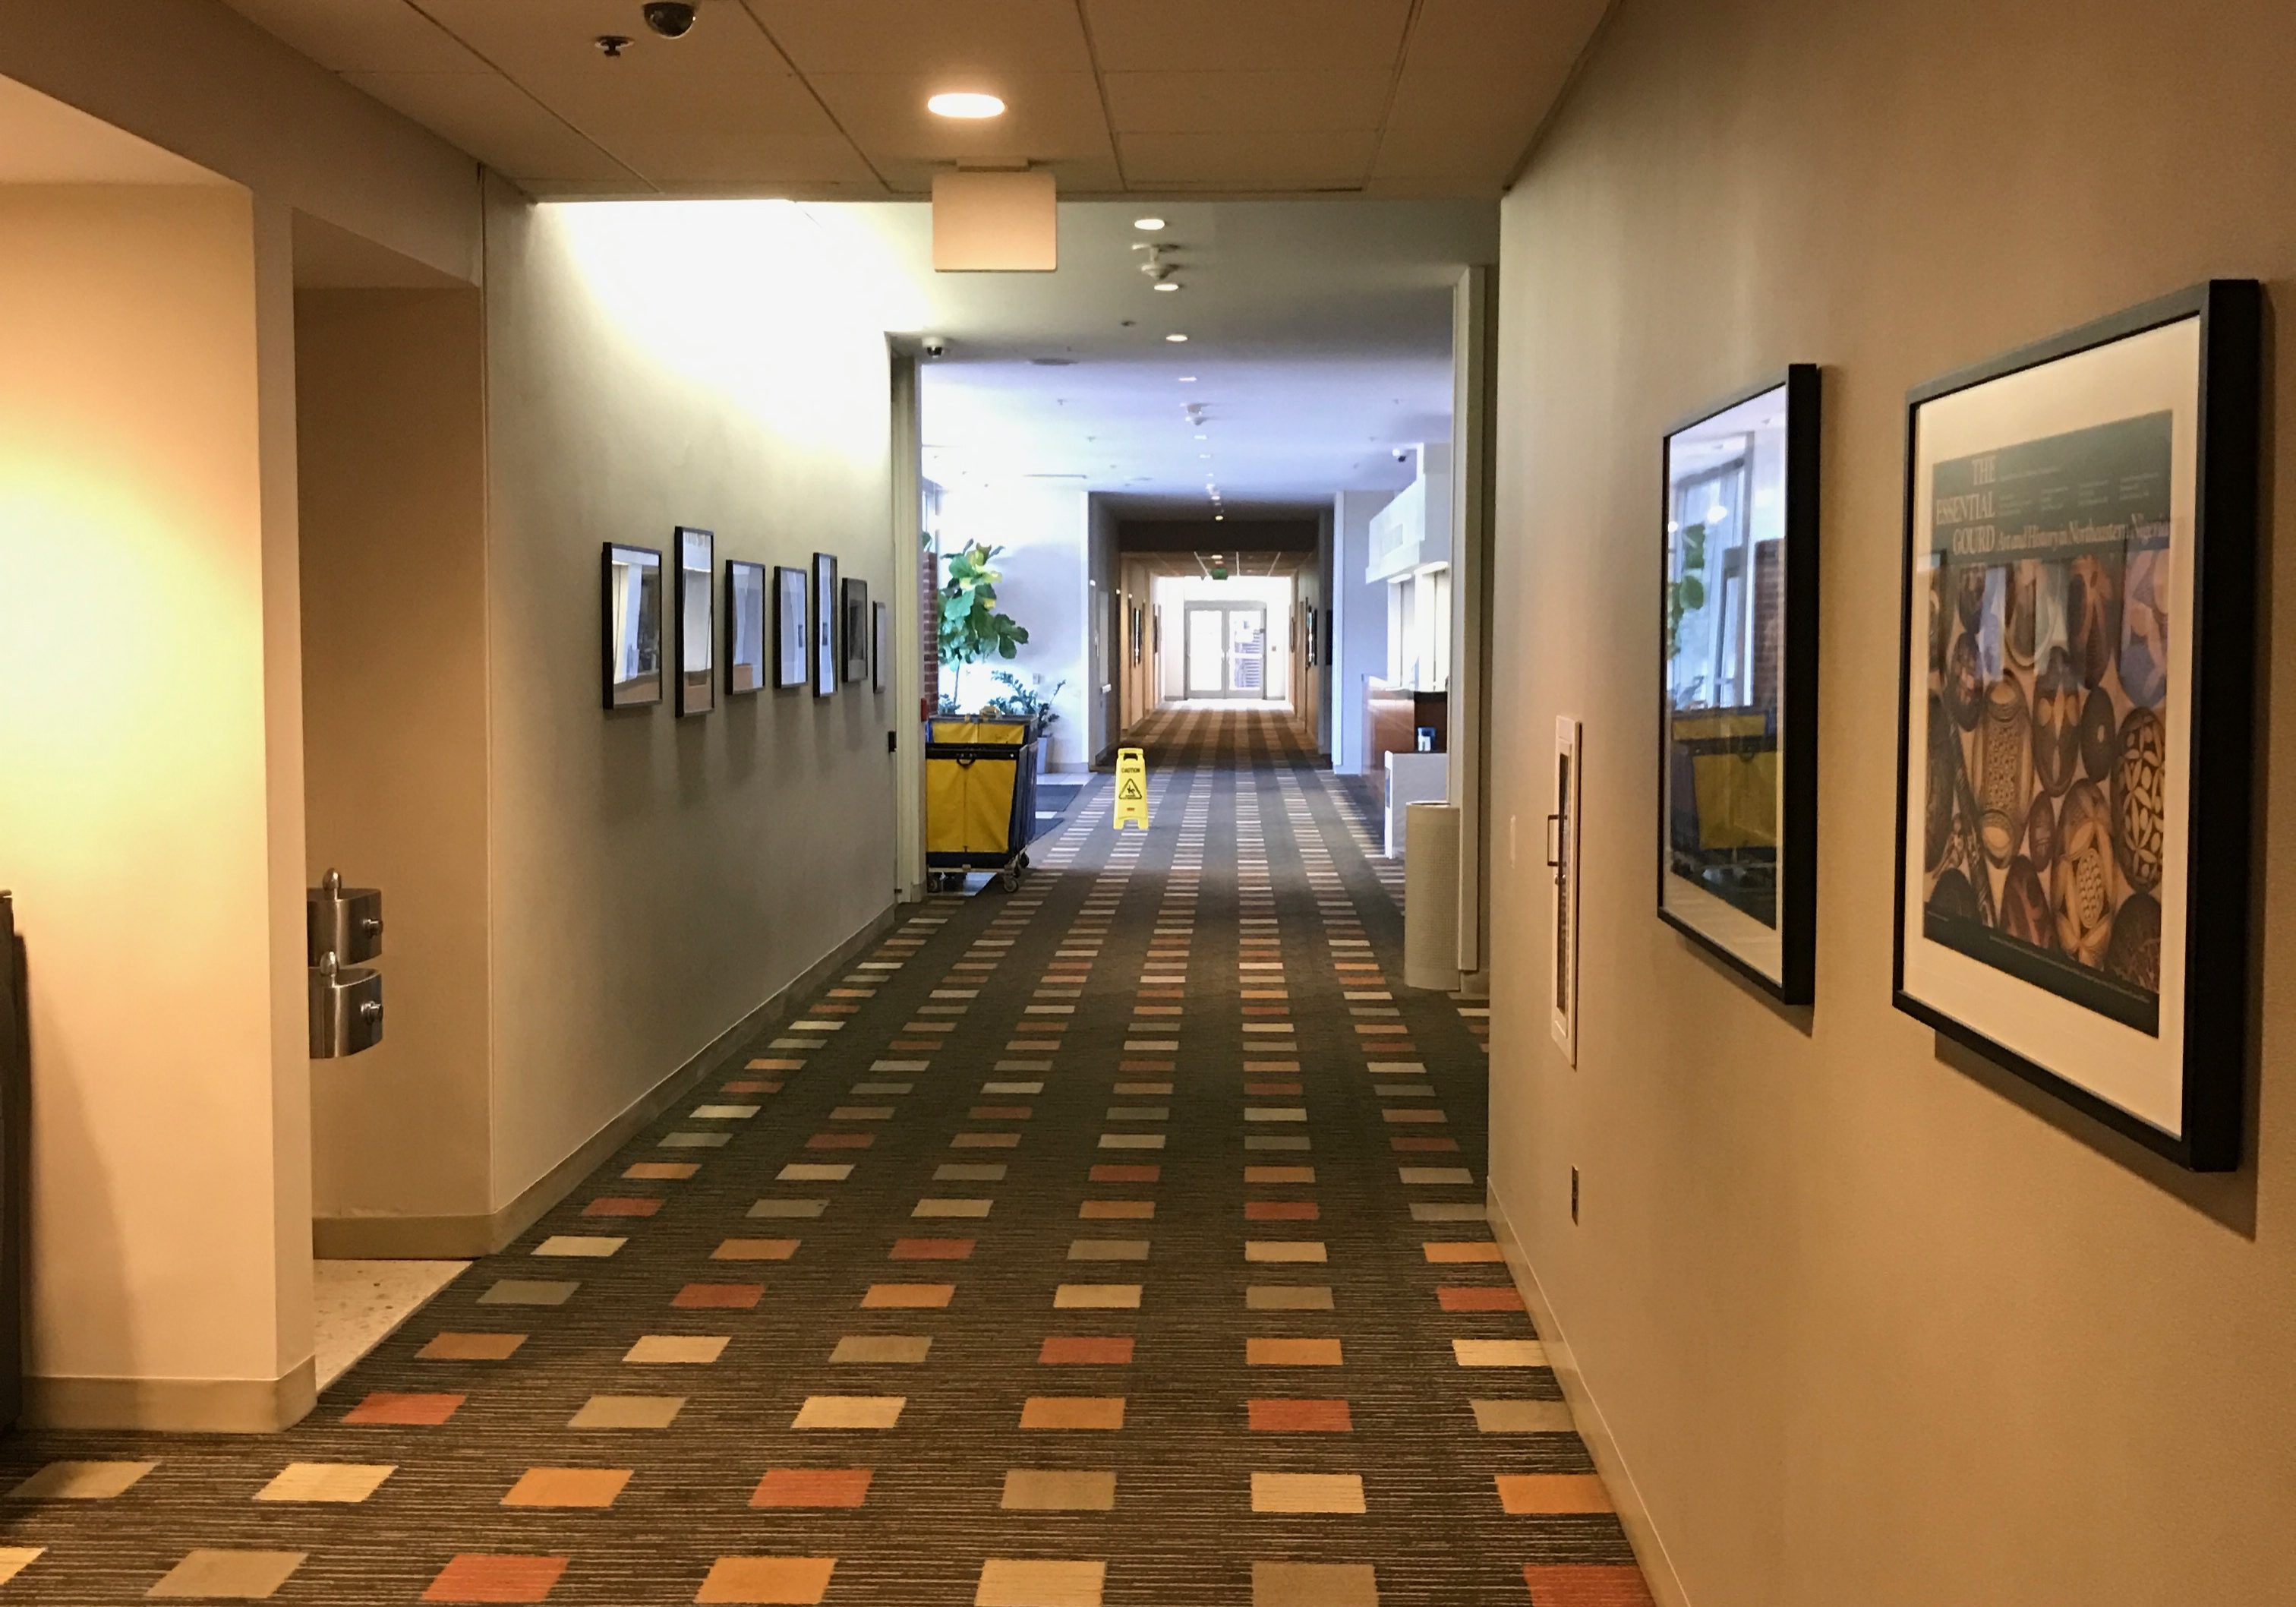 Dormitory Lobby showcasing painted walls and picture frames hanging upon them